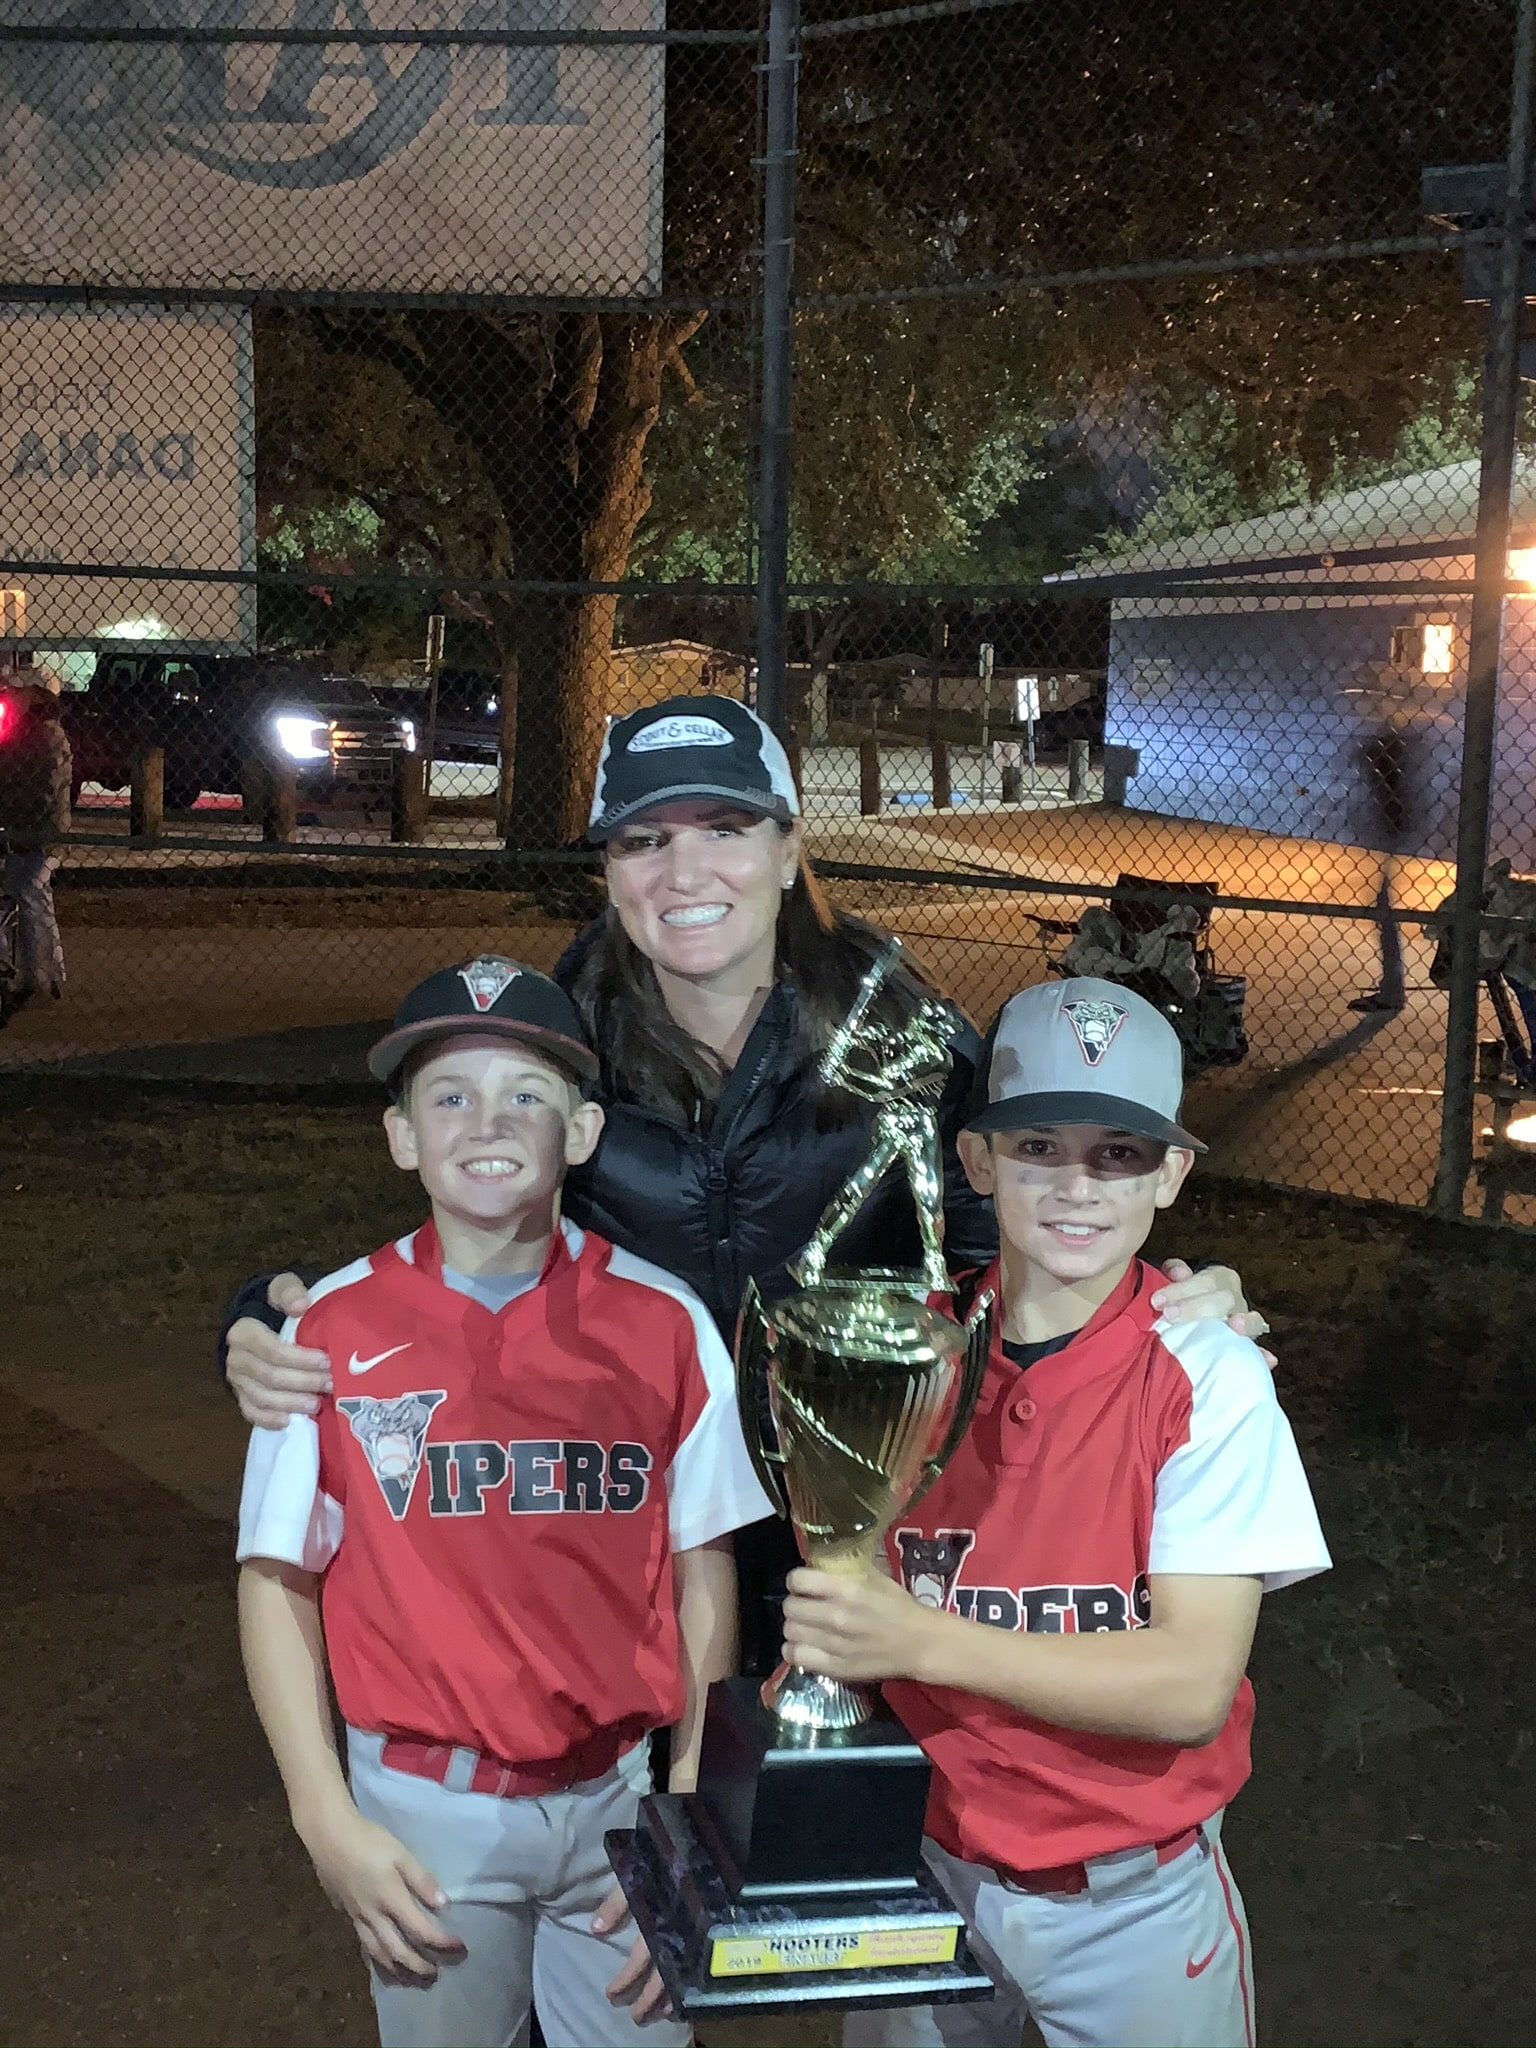 Cindy Trautmann with her sons CJ and Josh in baseball uniforms holding a trophy.